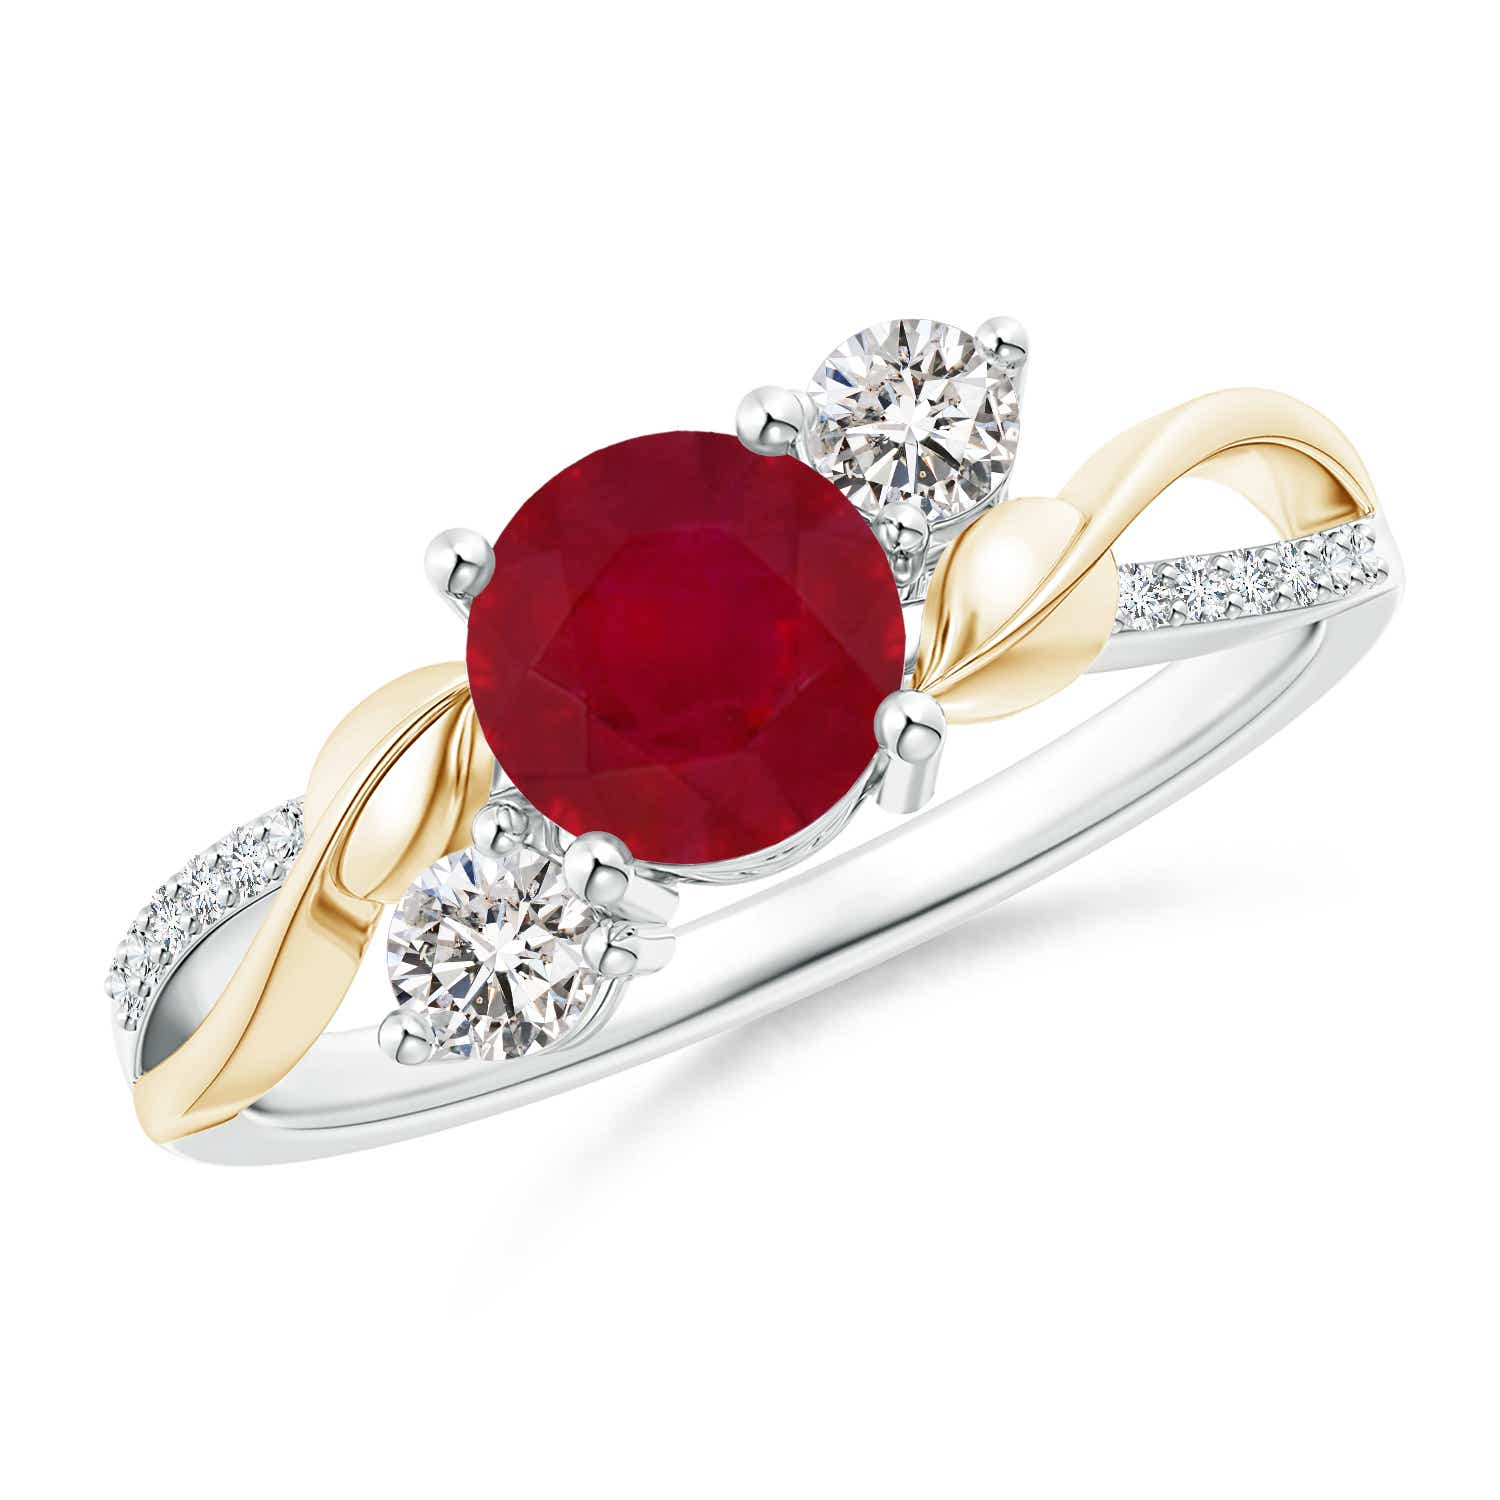 Angara Diamond and Natural Ruby Three Stone Ring in 14k Yellow Gold 1oZDm